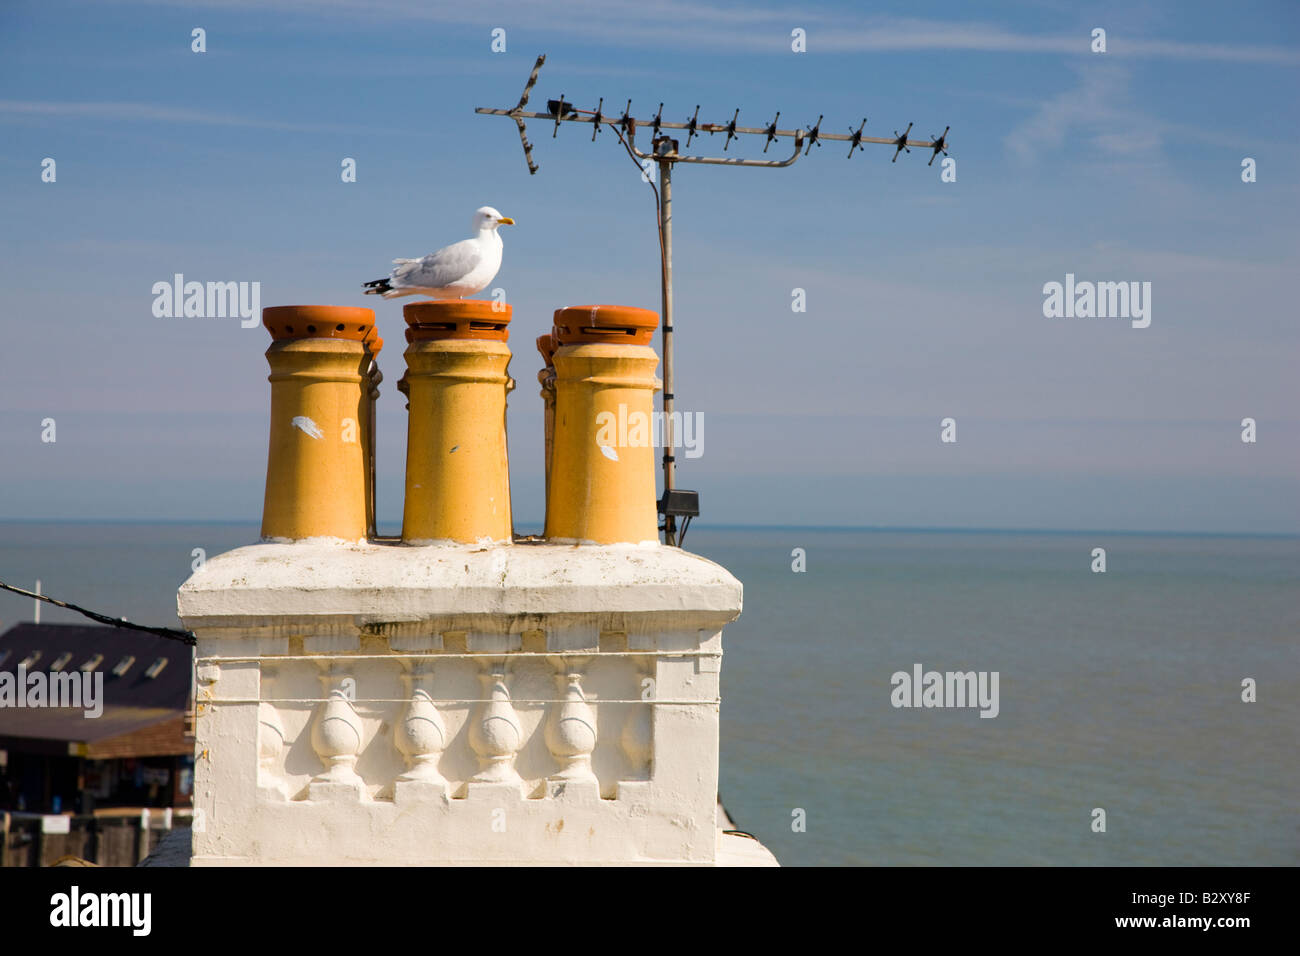 Herring Gull perched on chimney pots - Stock Image